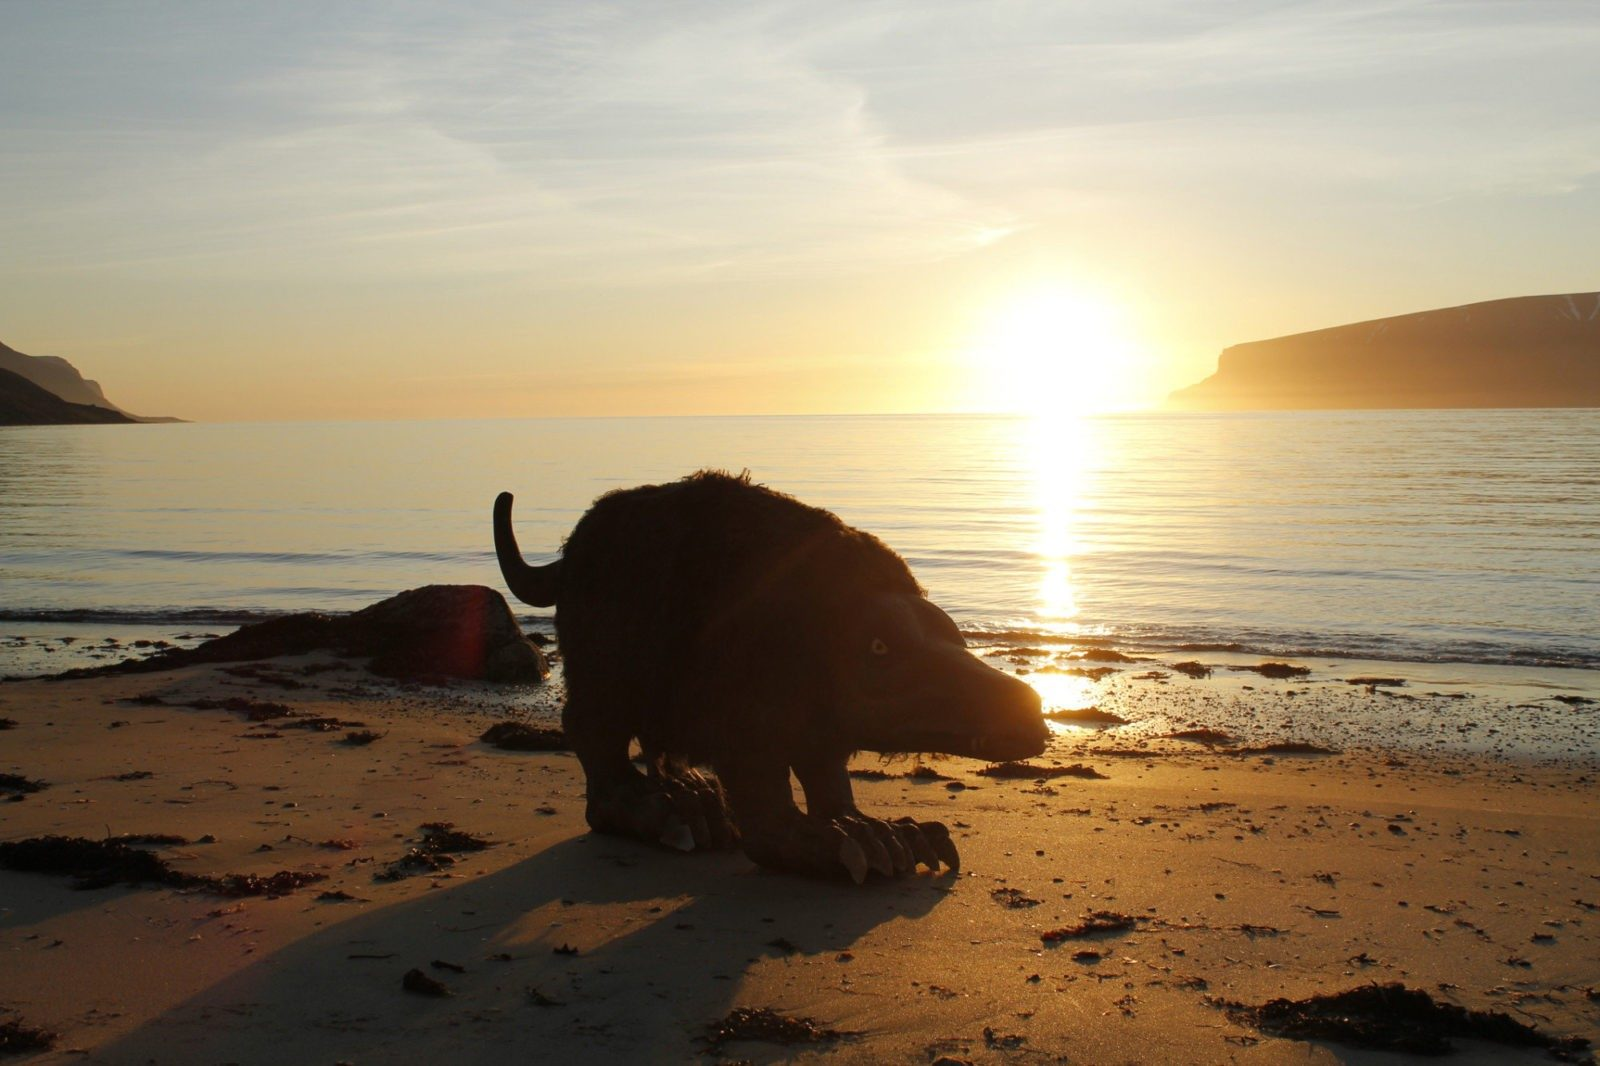 Fjorulalli or Sea Laddie sometimes prowls the beaches in search of tourists or other humans.